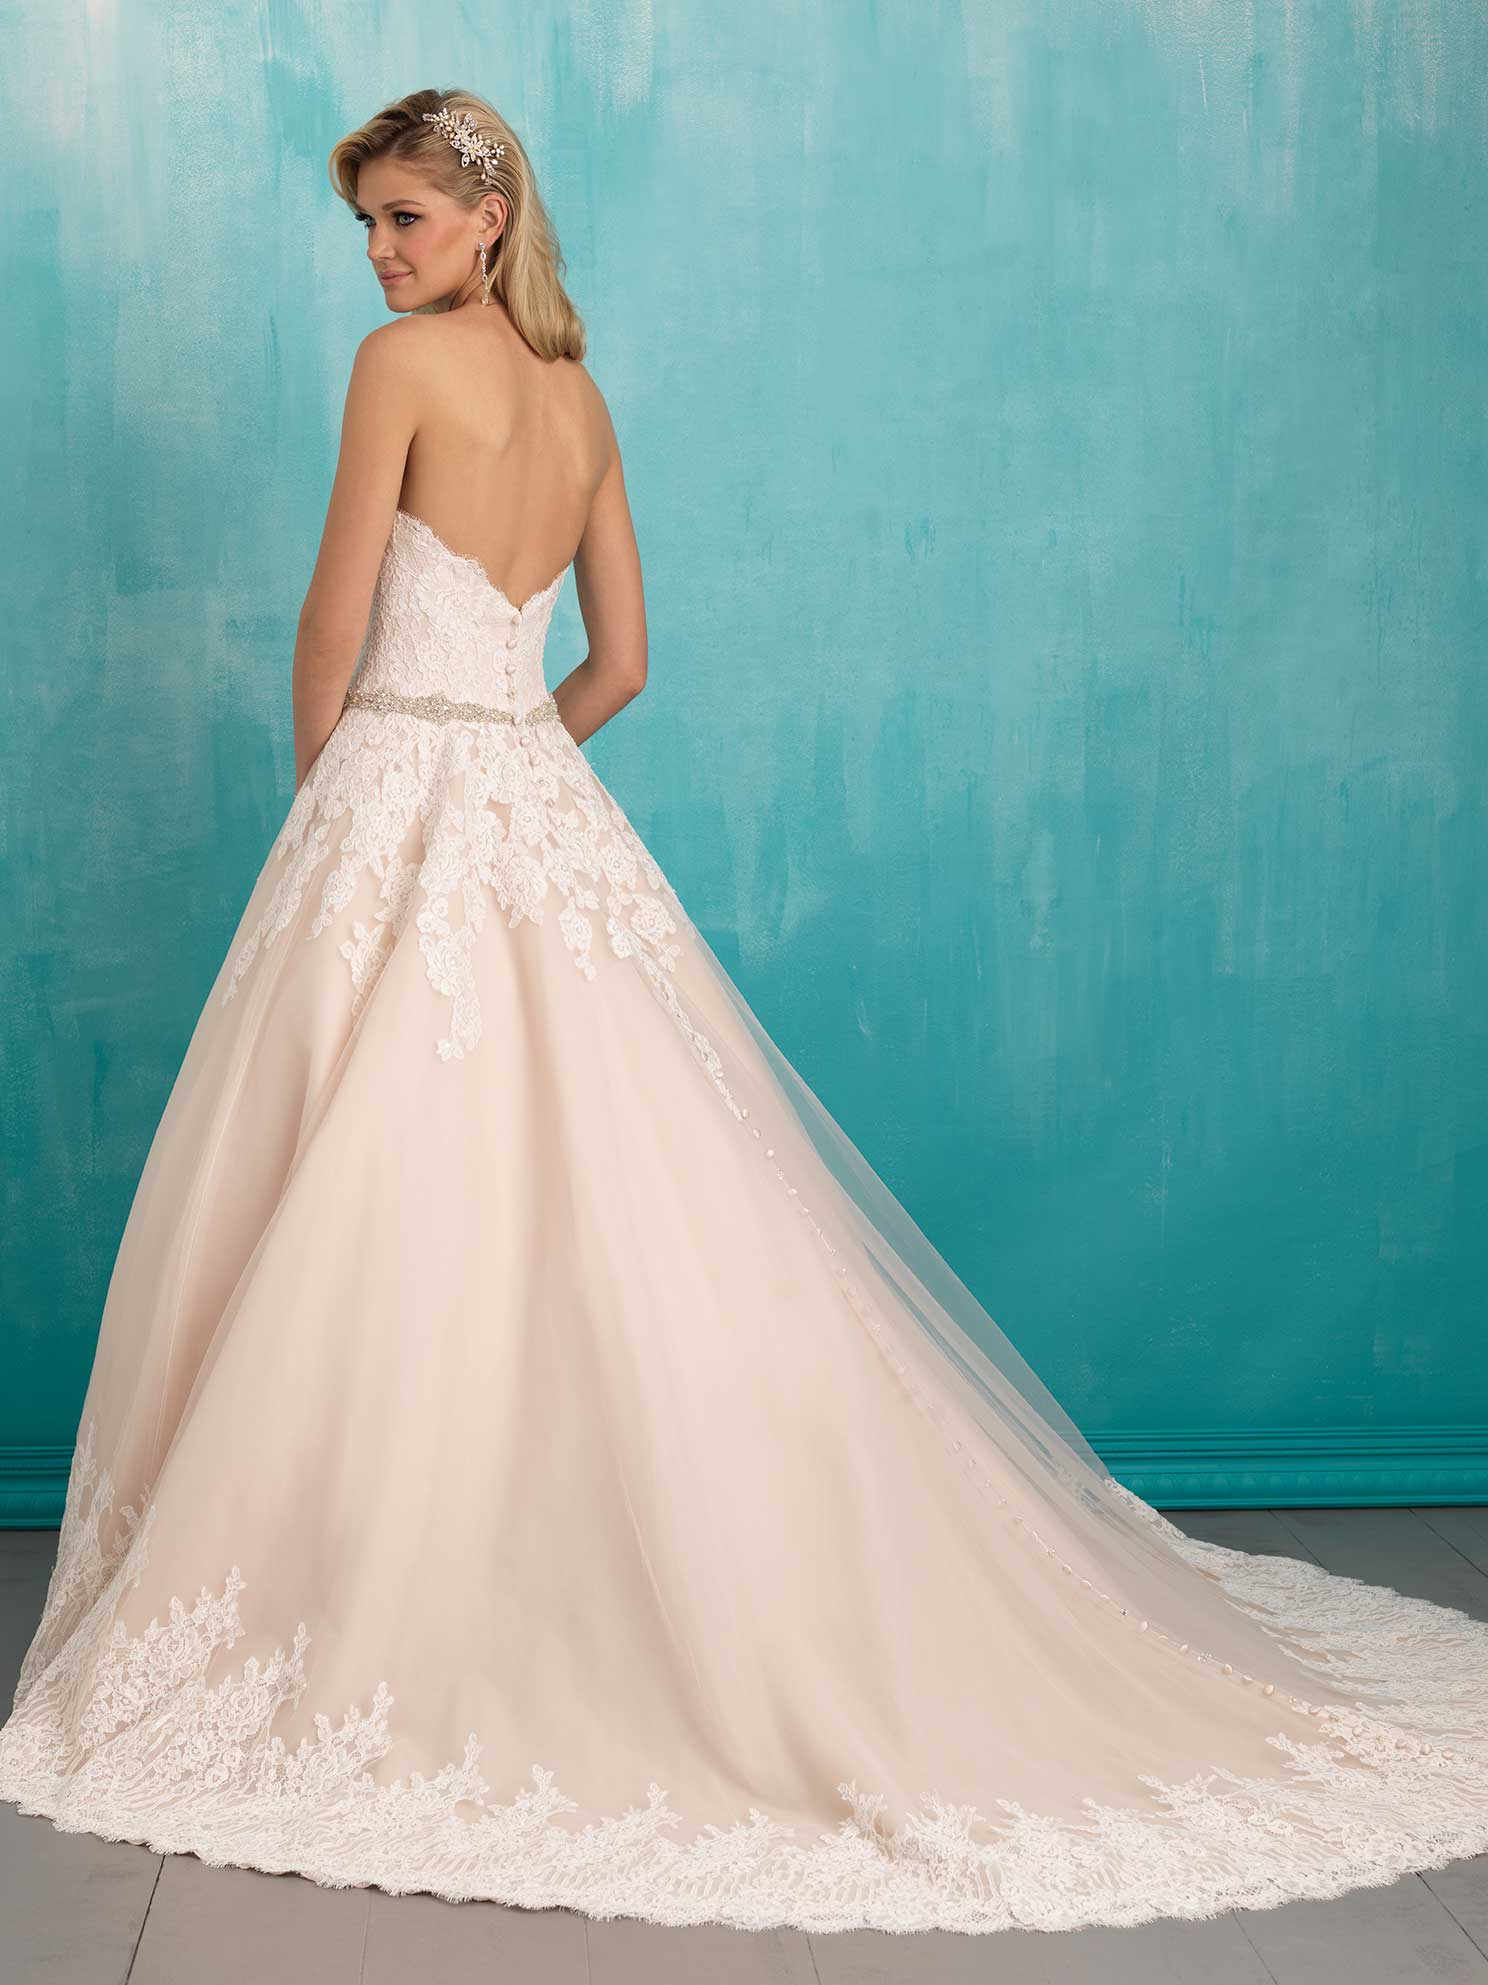 Ballew bridal and formal a memphis bridal tradition for over 35 years allure 2 junglespirit Image collections